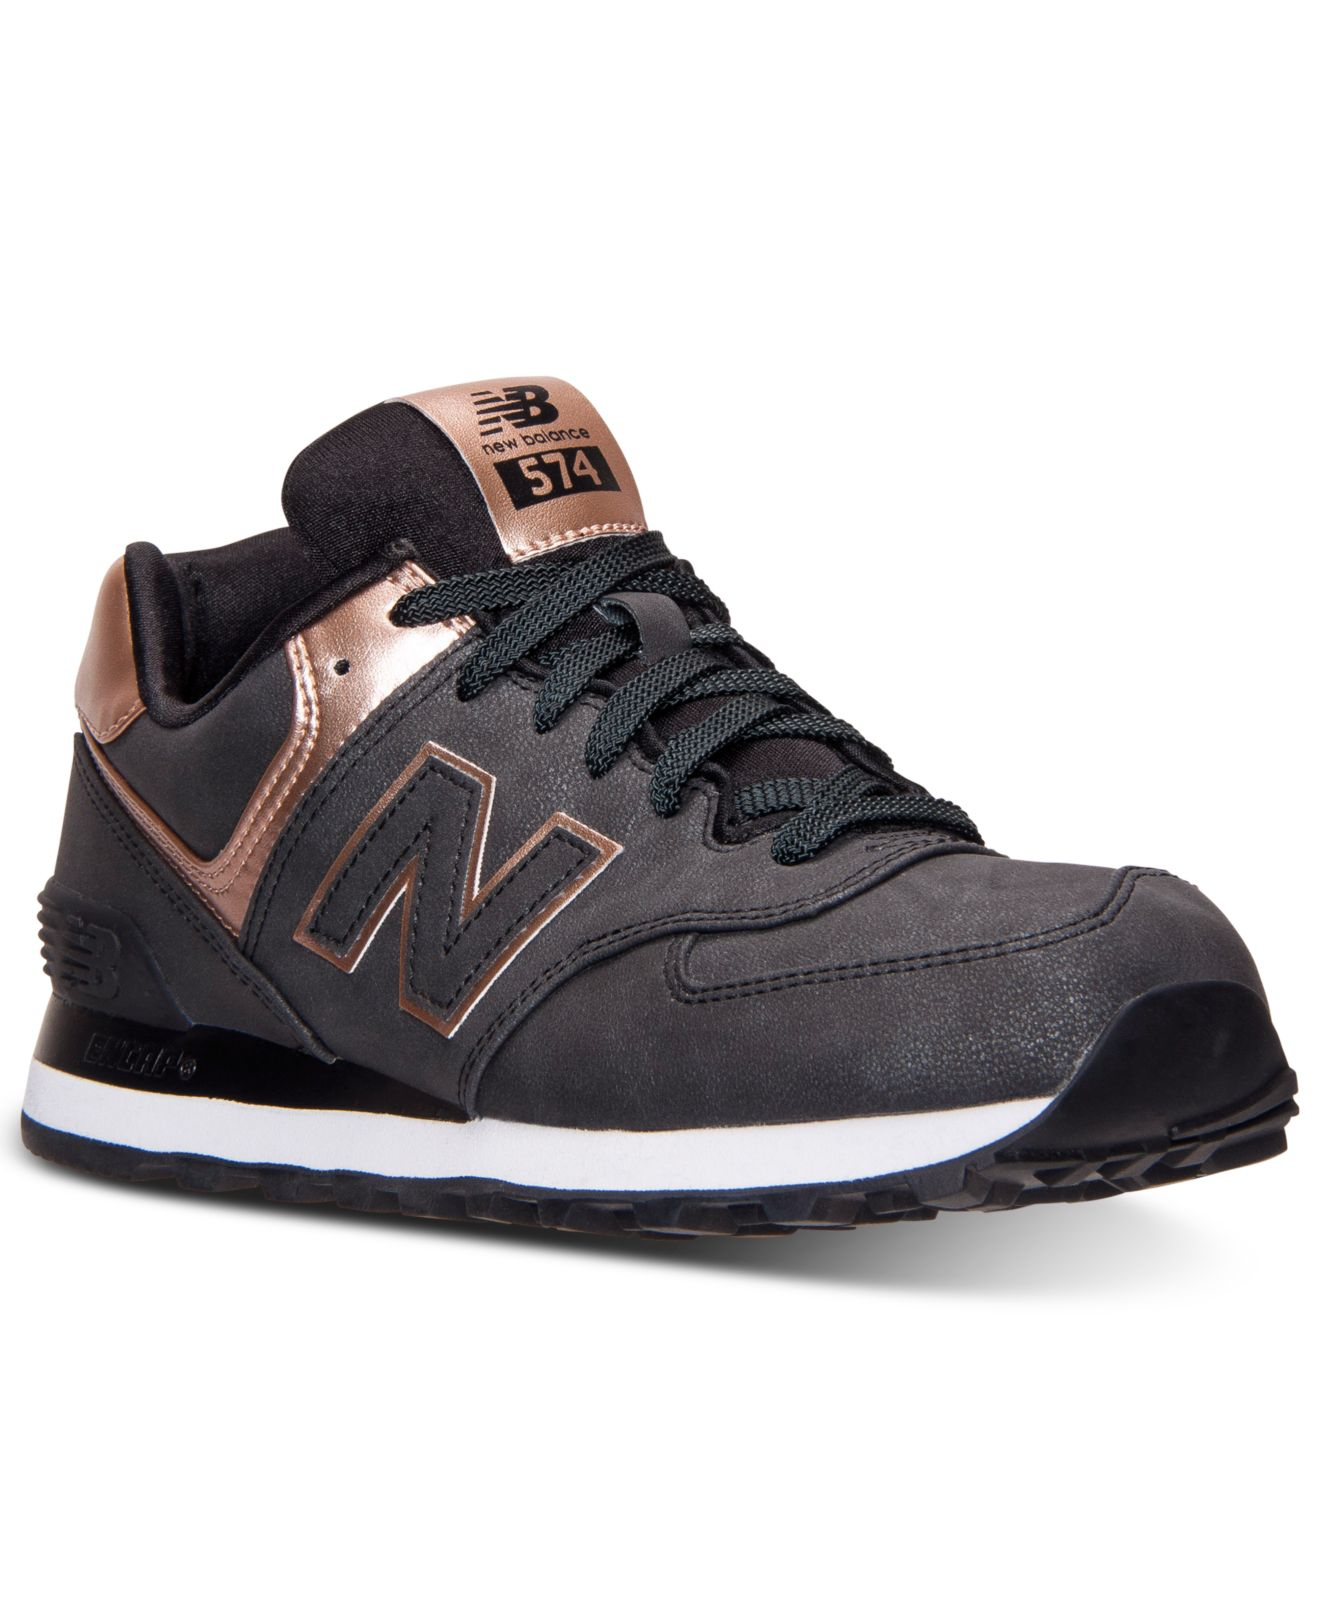 lyst new balance women 39 s 574 precious metals casual sneakers from finish line in metallic. Black Bedroom Furniture Sets. Home Design Ideas